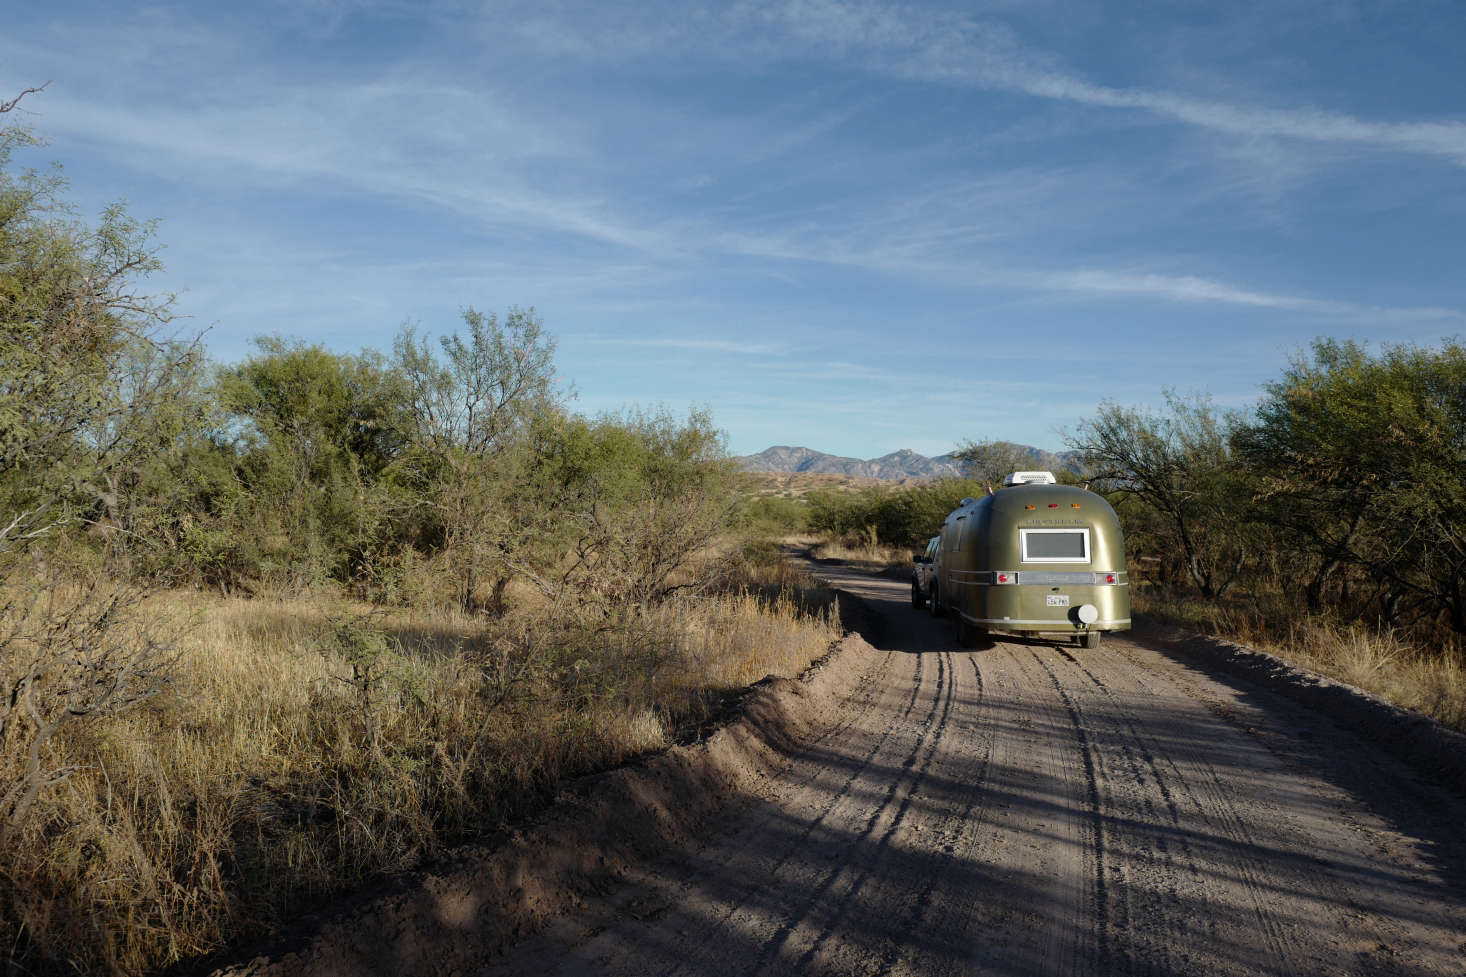 The Airstream is used for weekend getaways and as extra quarters at the ranch.